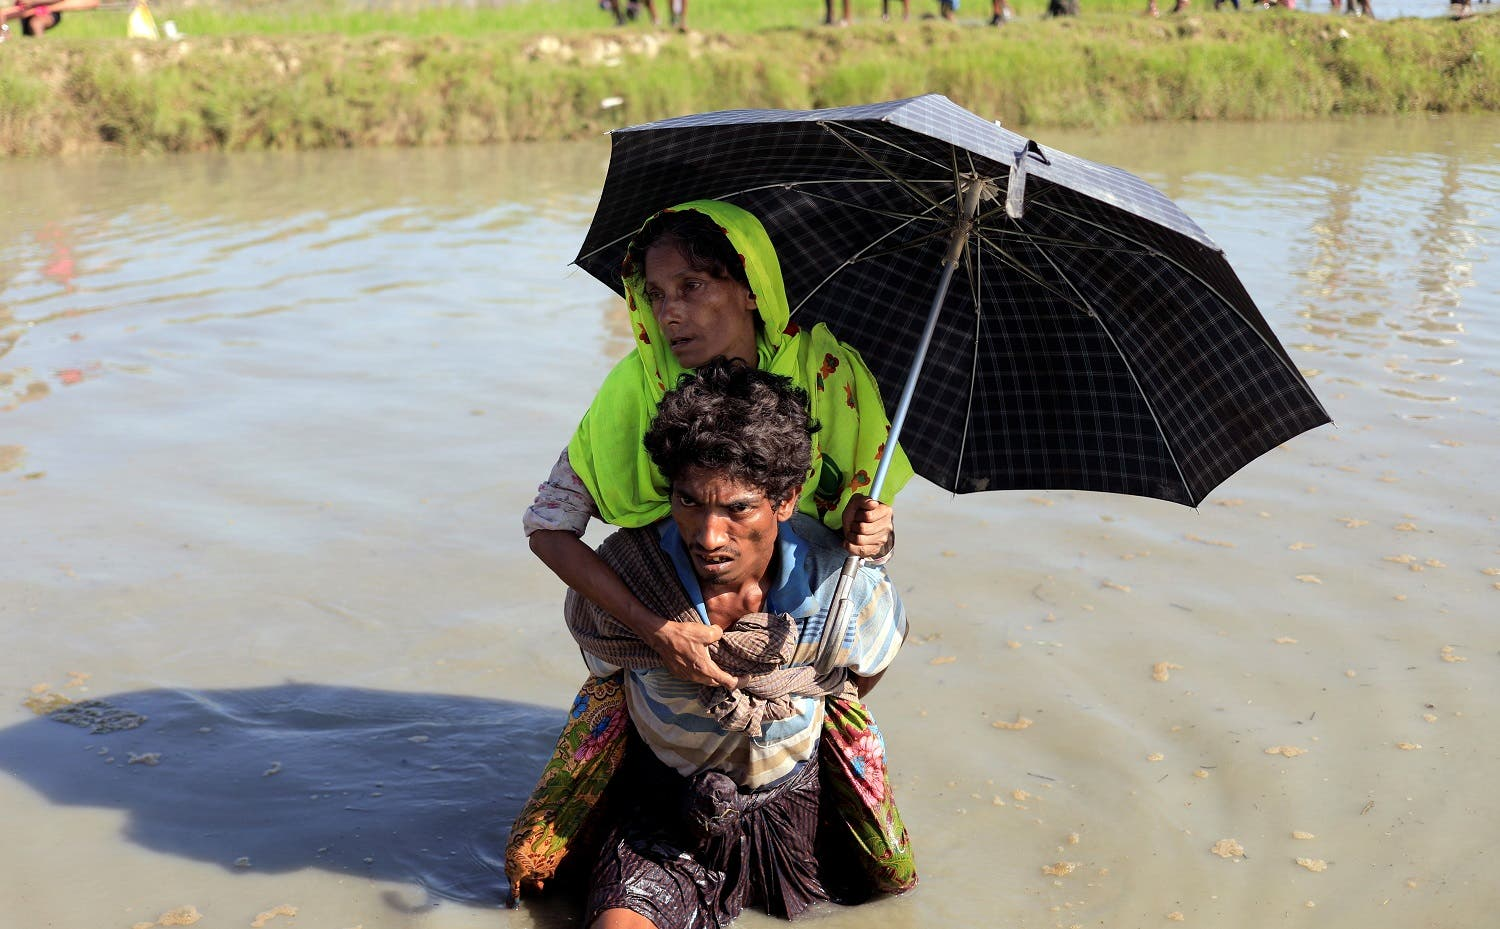 Rohingya refugees who fled from Myanmar make their way after crossing the border in Palang Khali, near Cox's Bazar, Bangladesh October 16, 2017. REUTERS/Zohra Bensemra